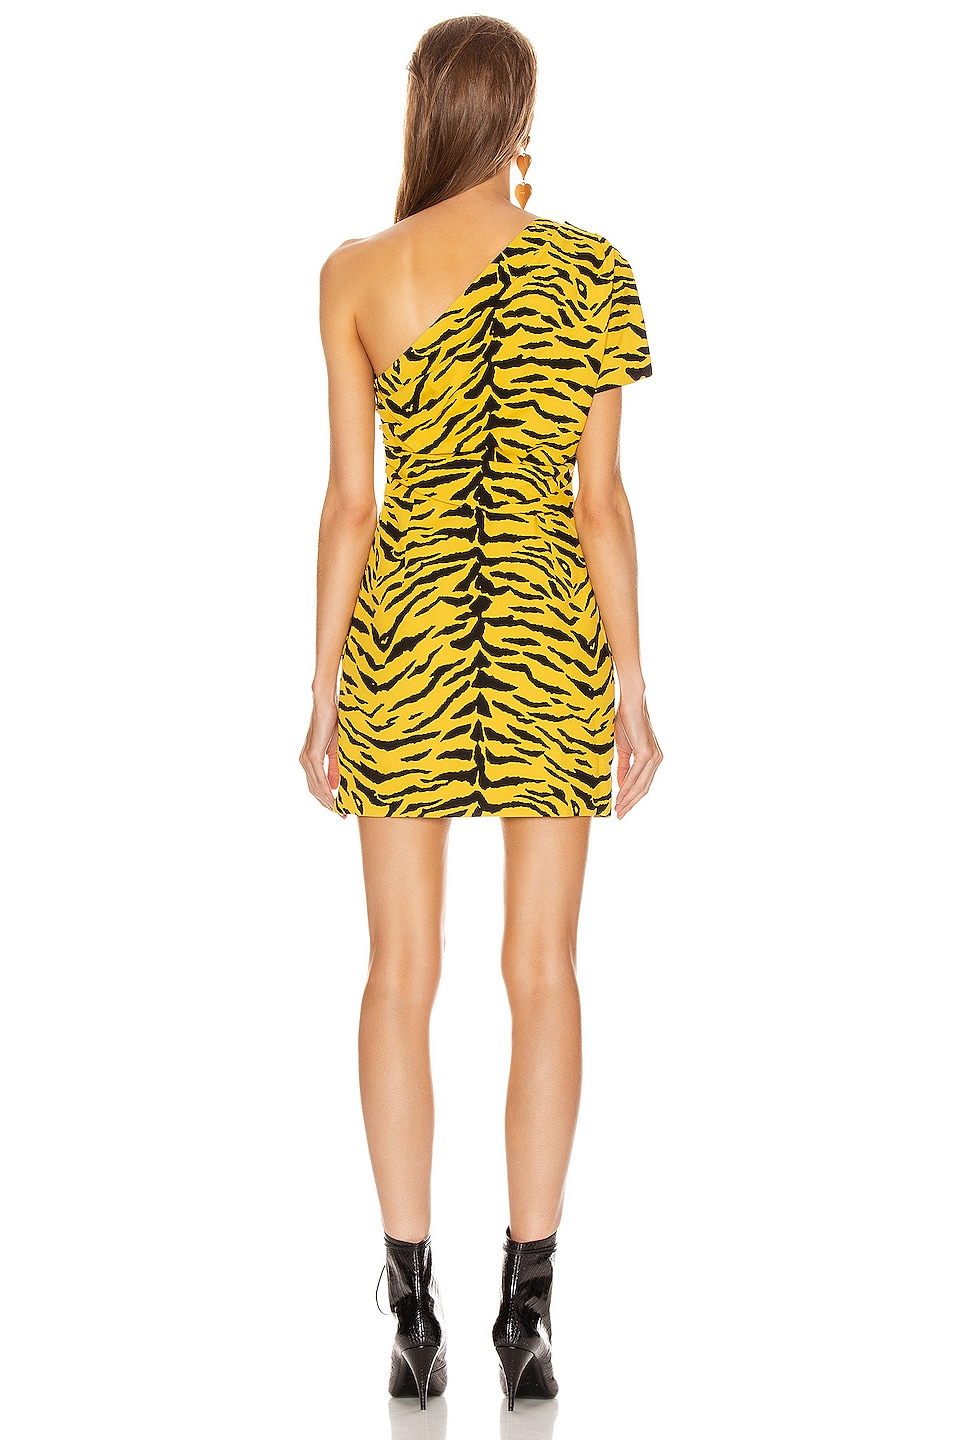 Image 4 of Saint Laurent One Shoulder Tiger Mini Dress in Yellow & Black